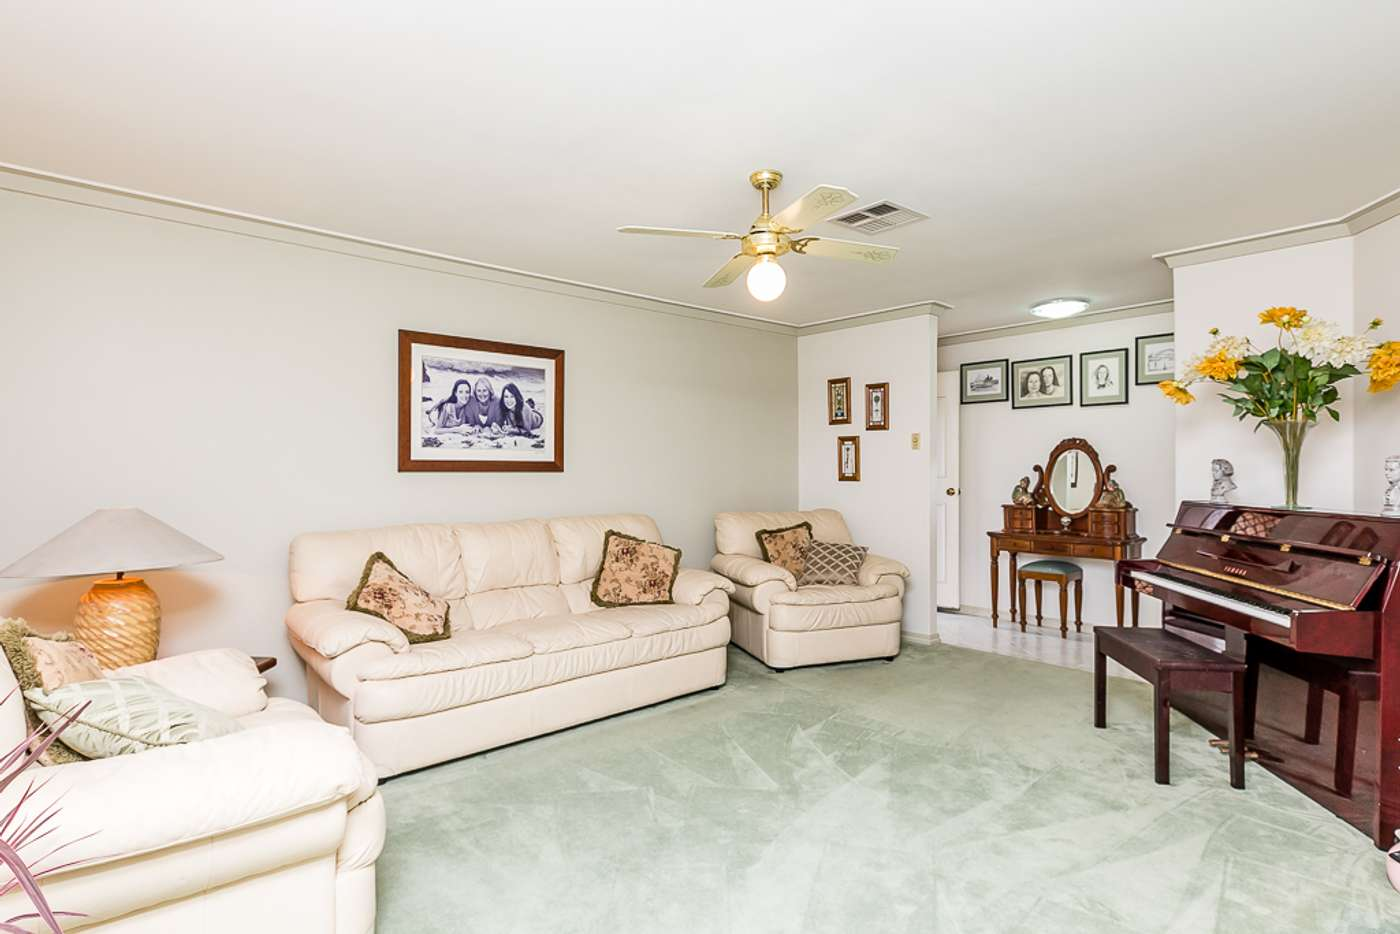 Seventh view of Homely house listing, 2 Melo Court, Heathridge WA 6027